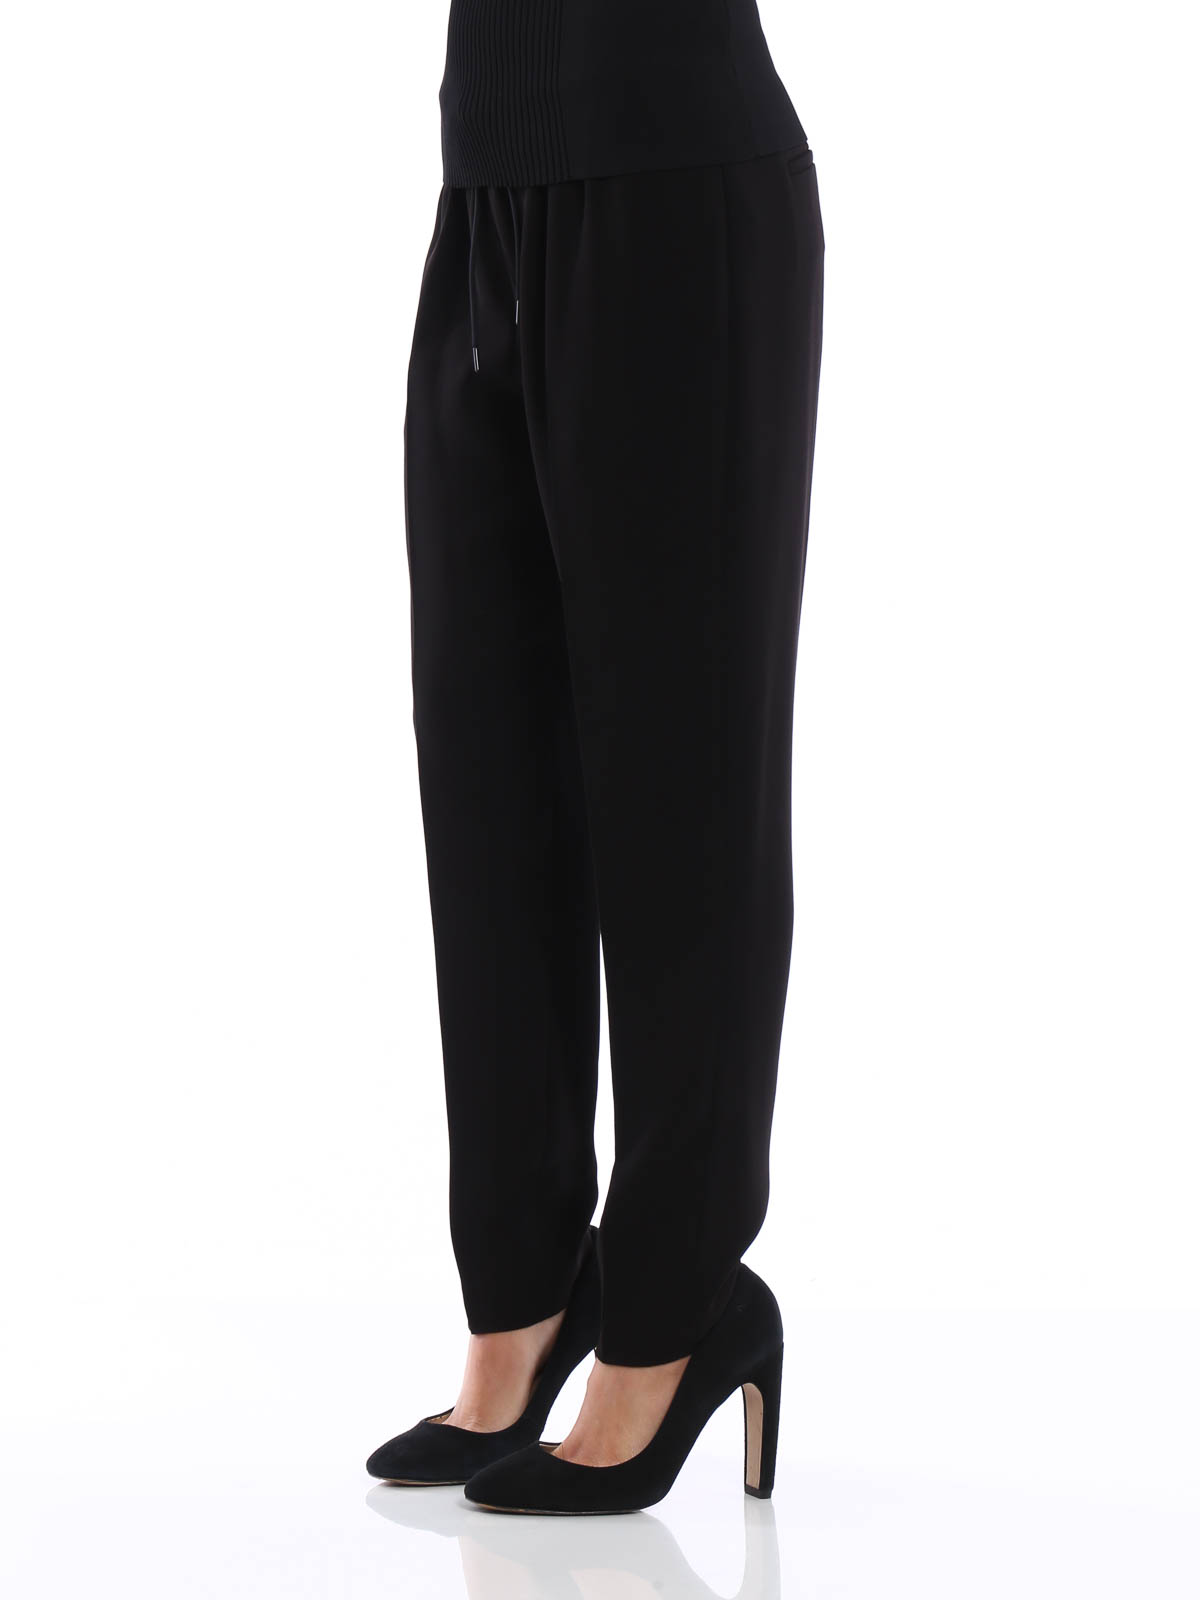 TROUSERS - Casual trousers Alexander Wang Discount Manchester Huge Surprise Cheap Price 9iyemel